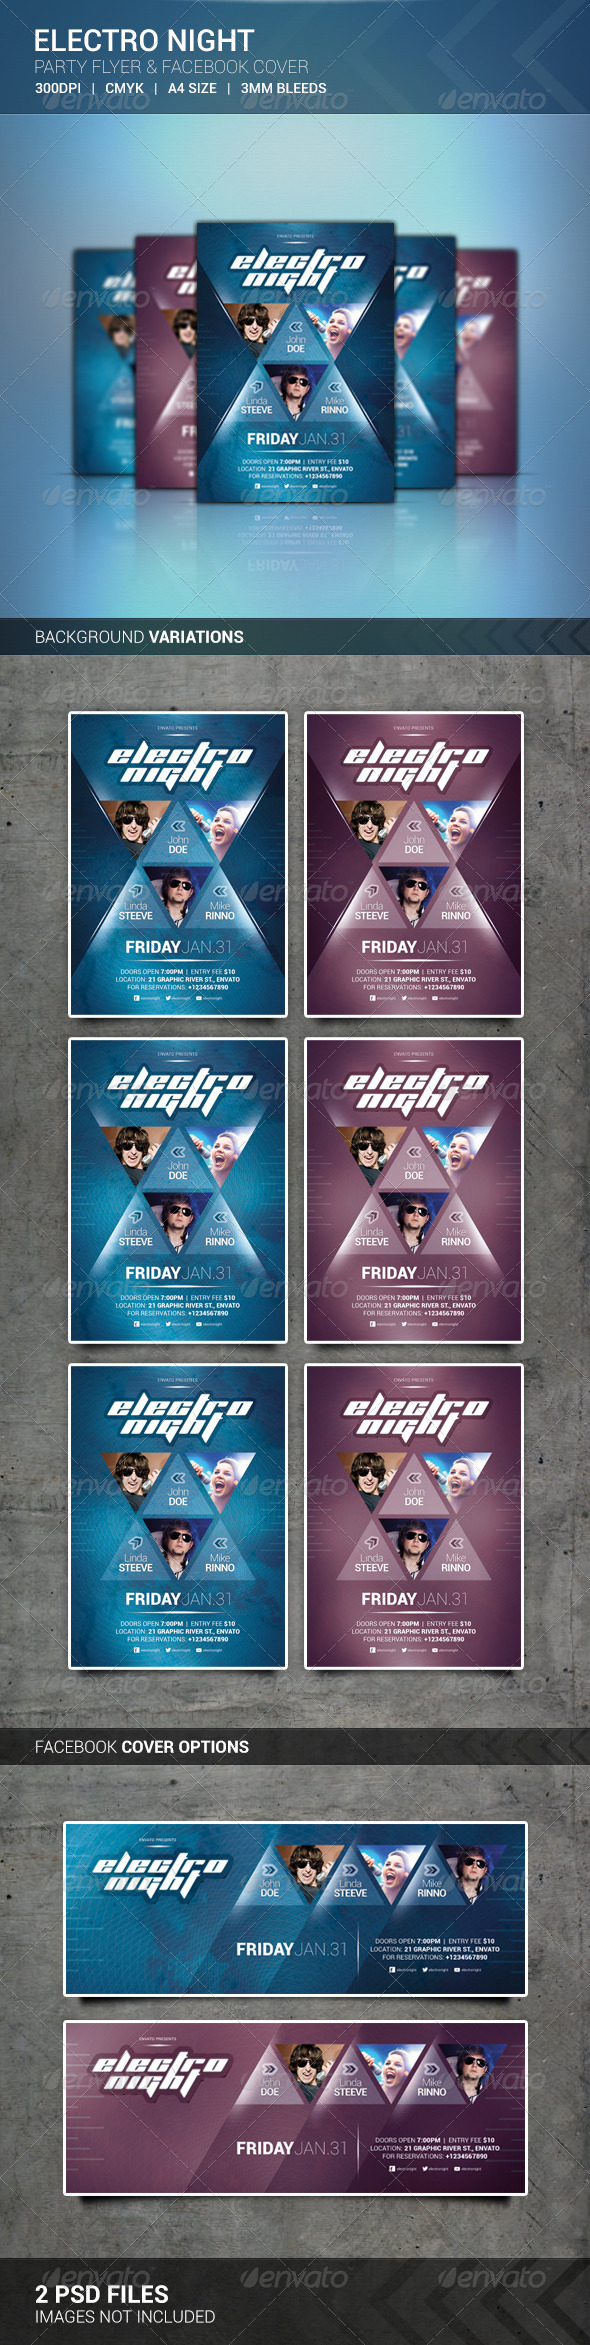 GraphicRiver Electro Night Flyer & Facebook Cover 6666965